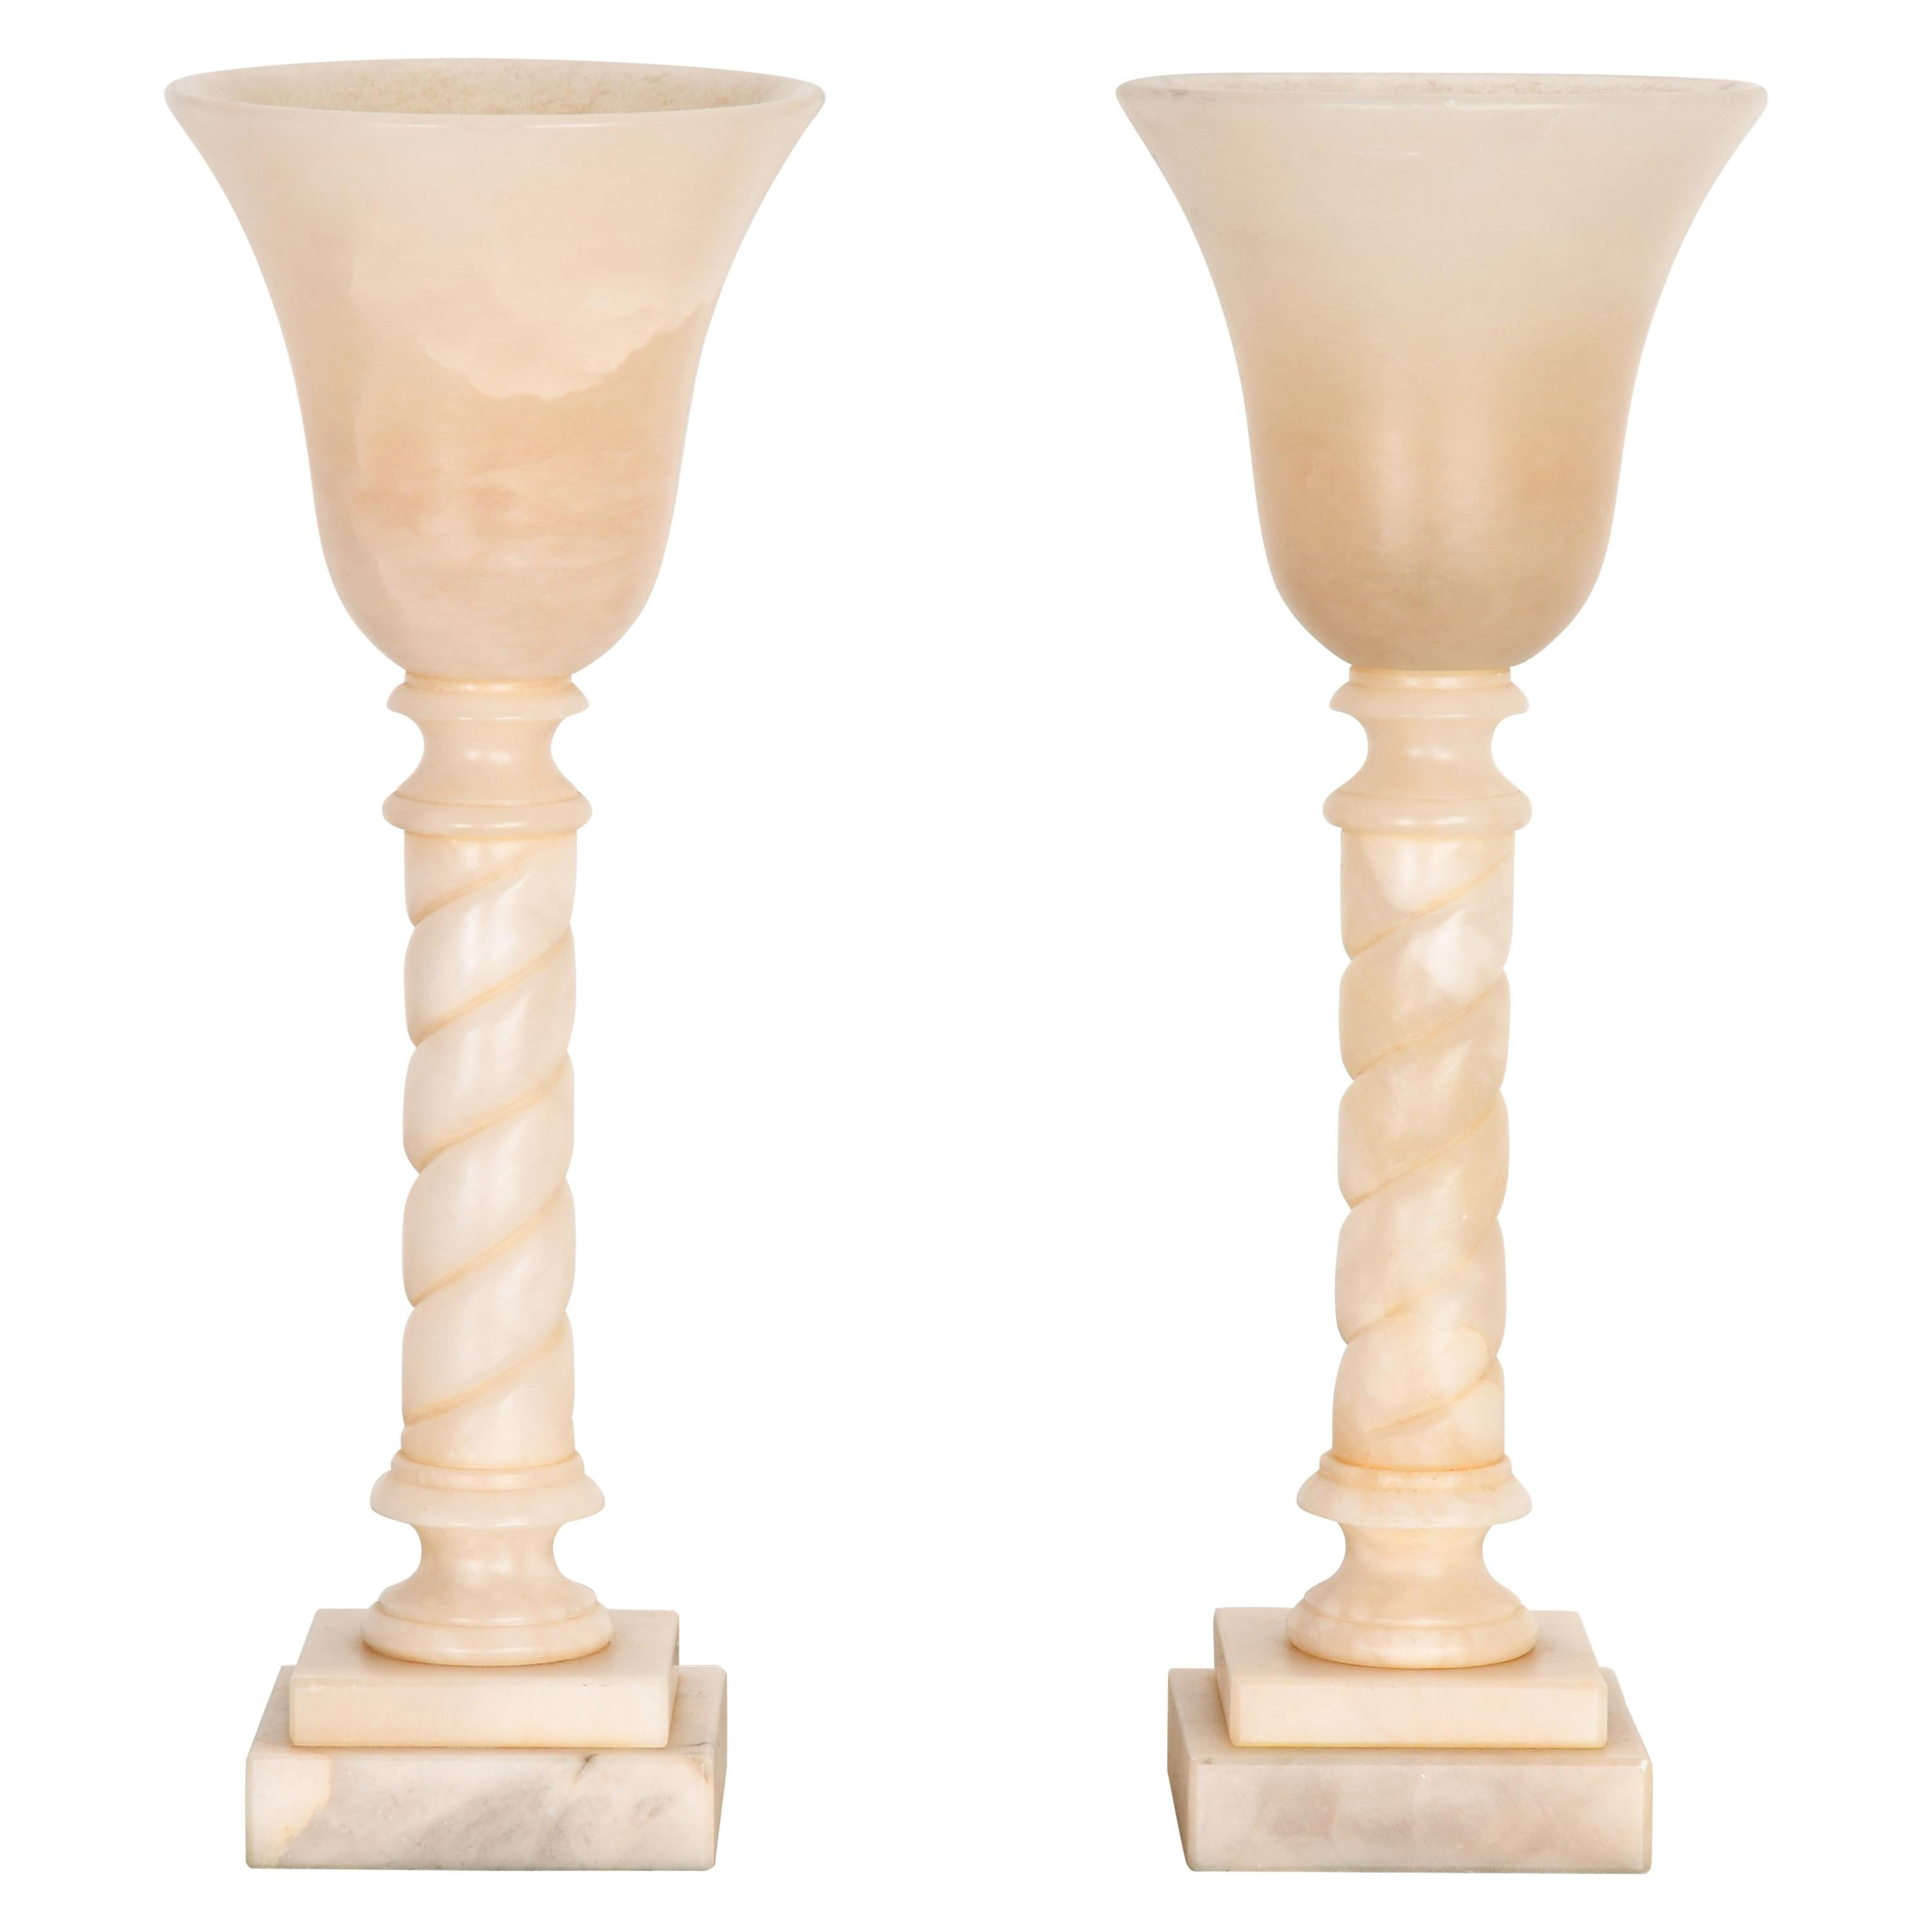 Italian Alabaster Candle Holders in the Manner of Michael Taylor, 1980s